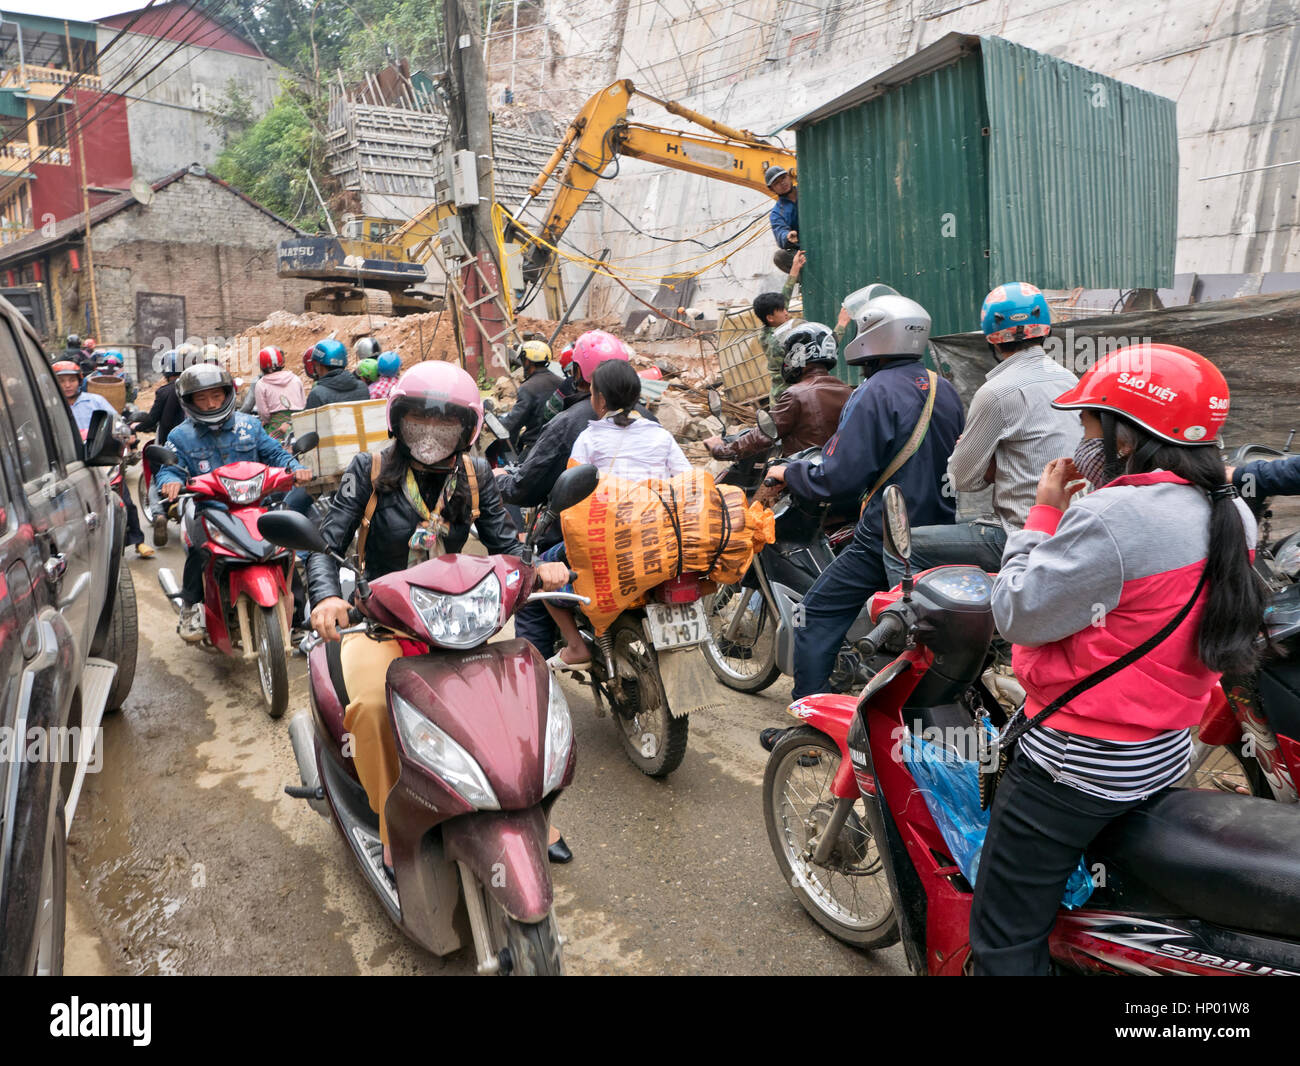 People riding scooters & motorcycles, wearing helmets & protective gear, city street, parked automobile, - Stock Image